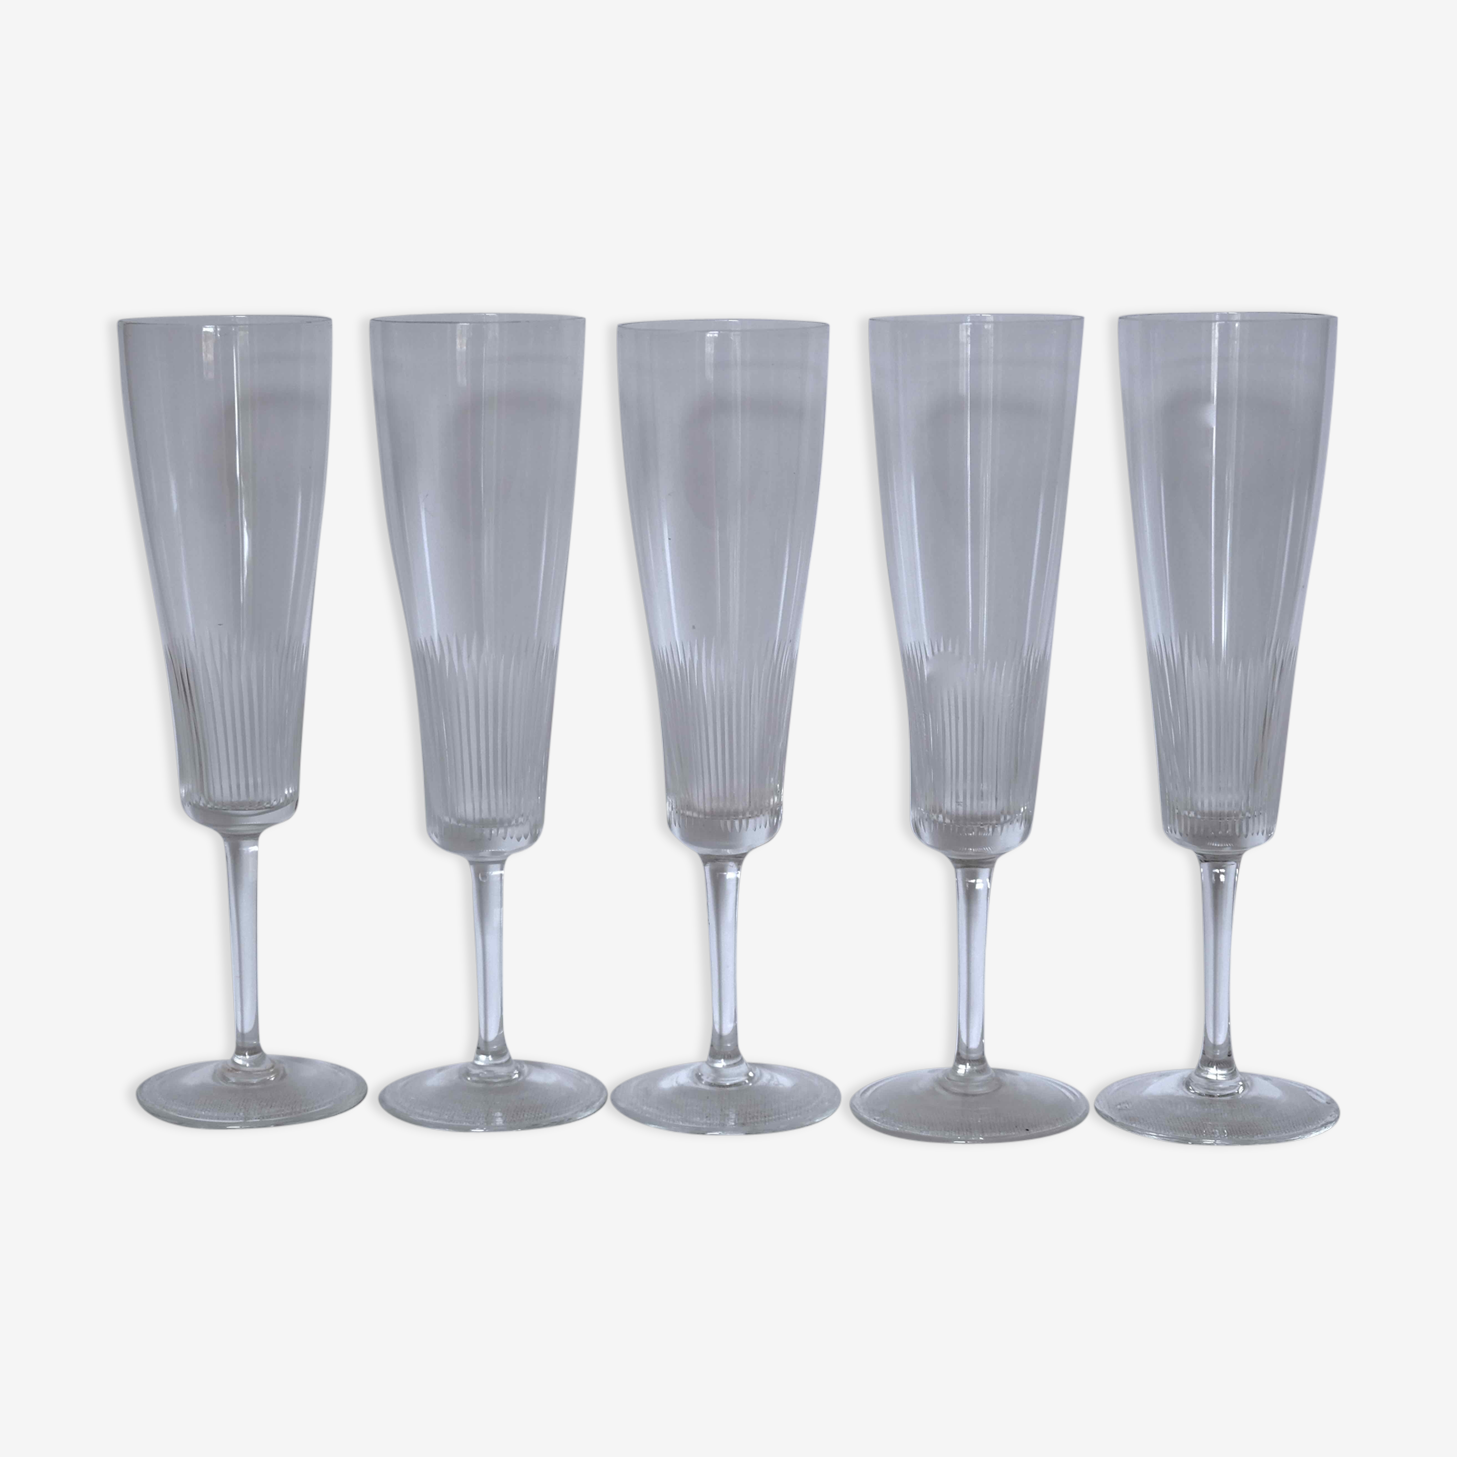 Series of 5 in fine old Crystal champagne flutes, blown mouth of the time napoleon